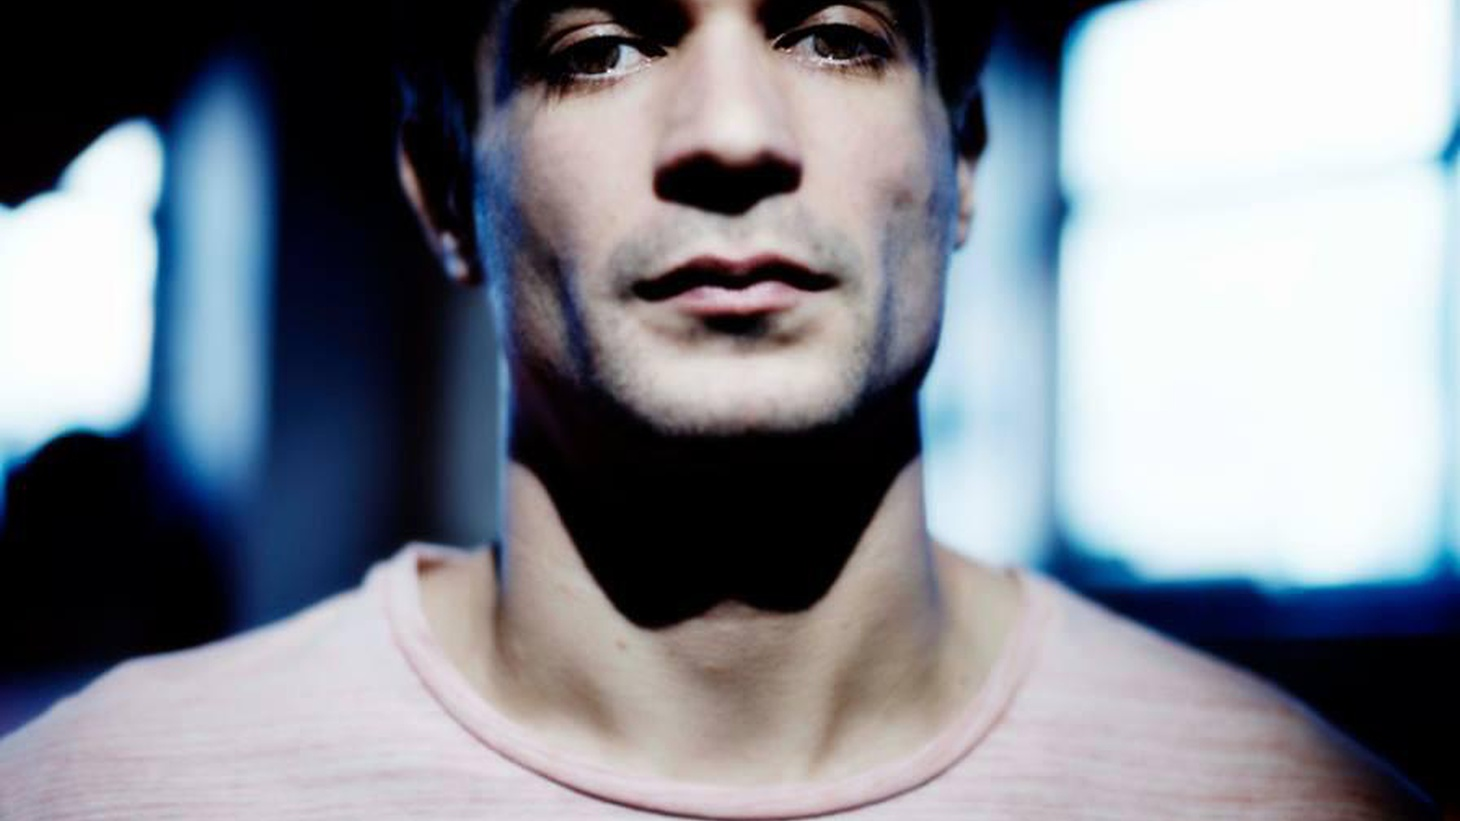 At 10am UK producer and composer Jon Hopkins stops by for a quick chat about his collaboration with Coldplay and his forays into film scoring and composition.